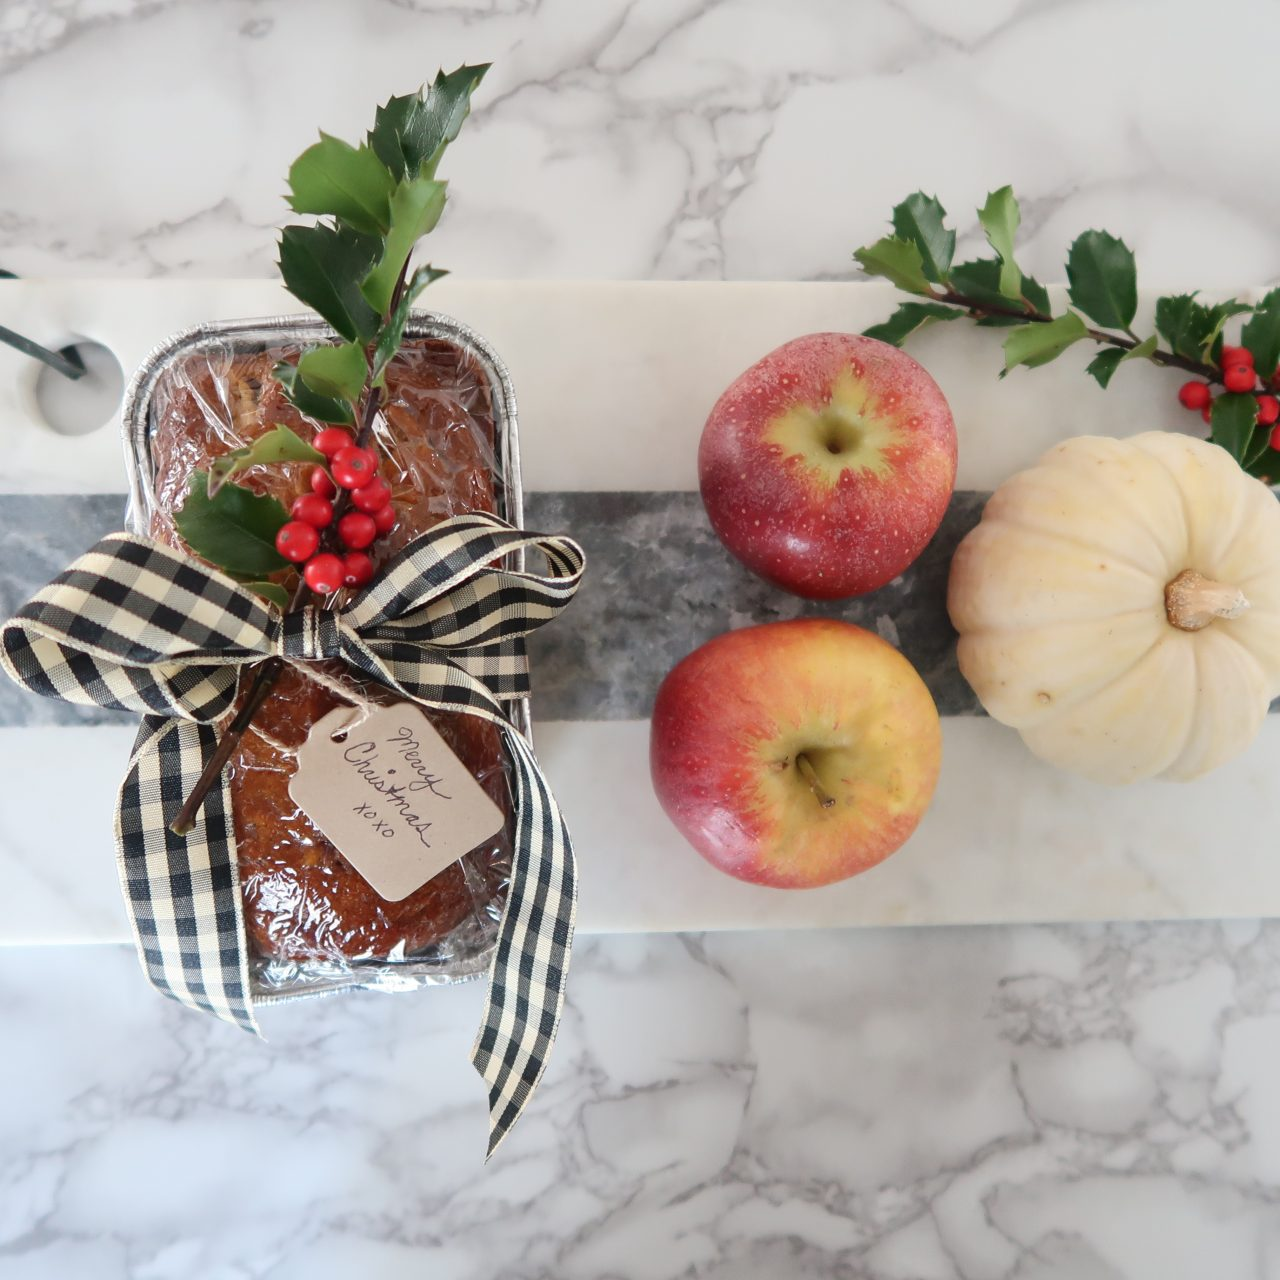 Homemade Holiday Gifts | Breads Baked with Love